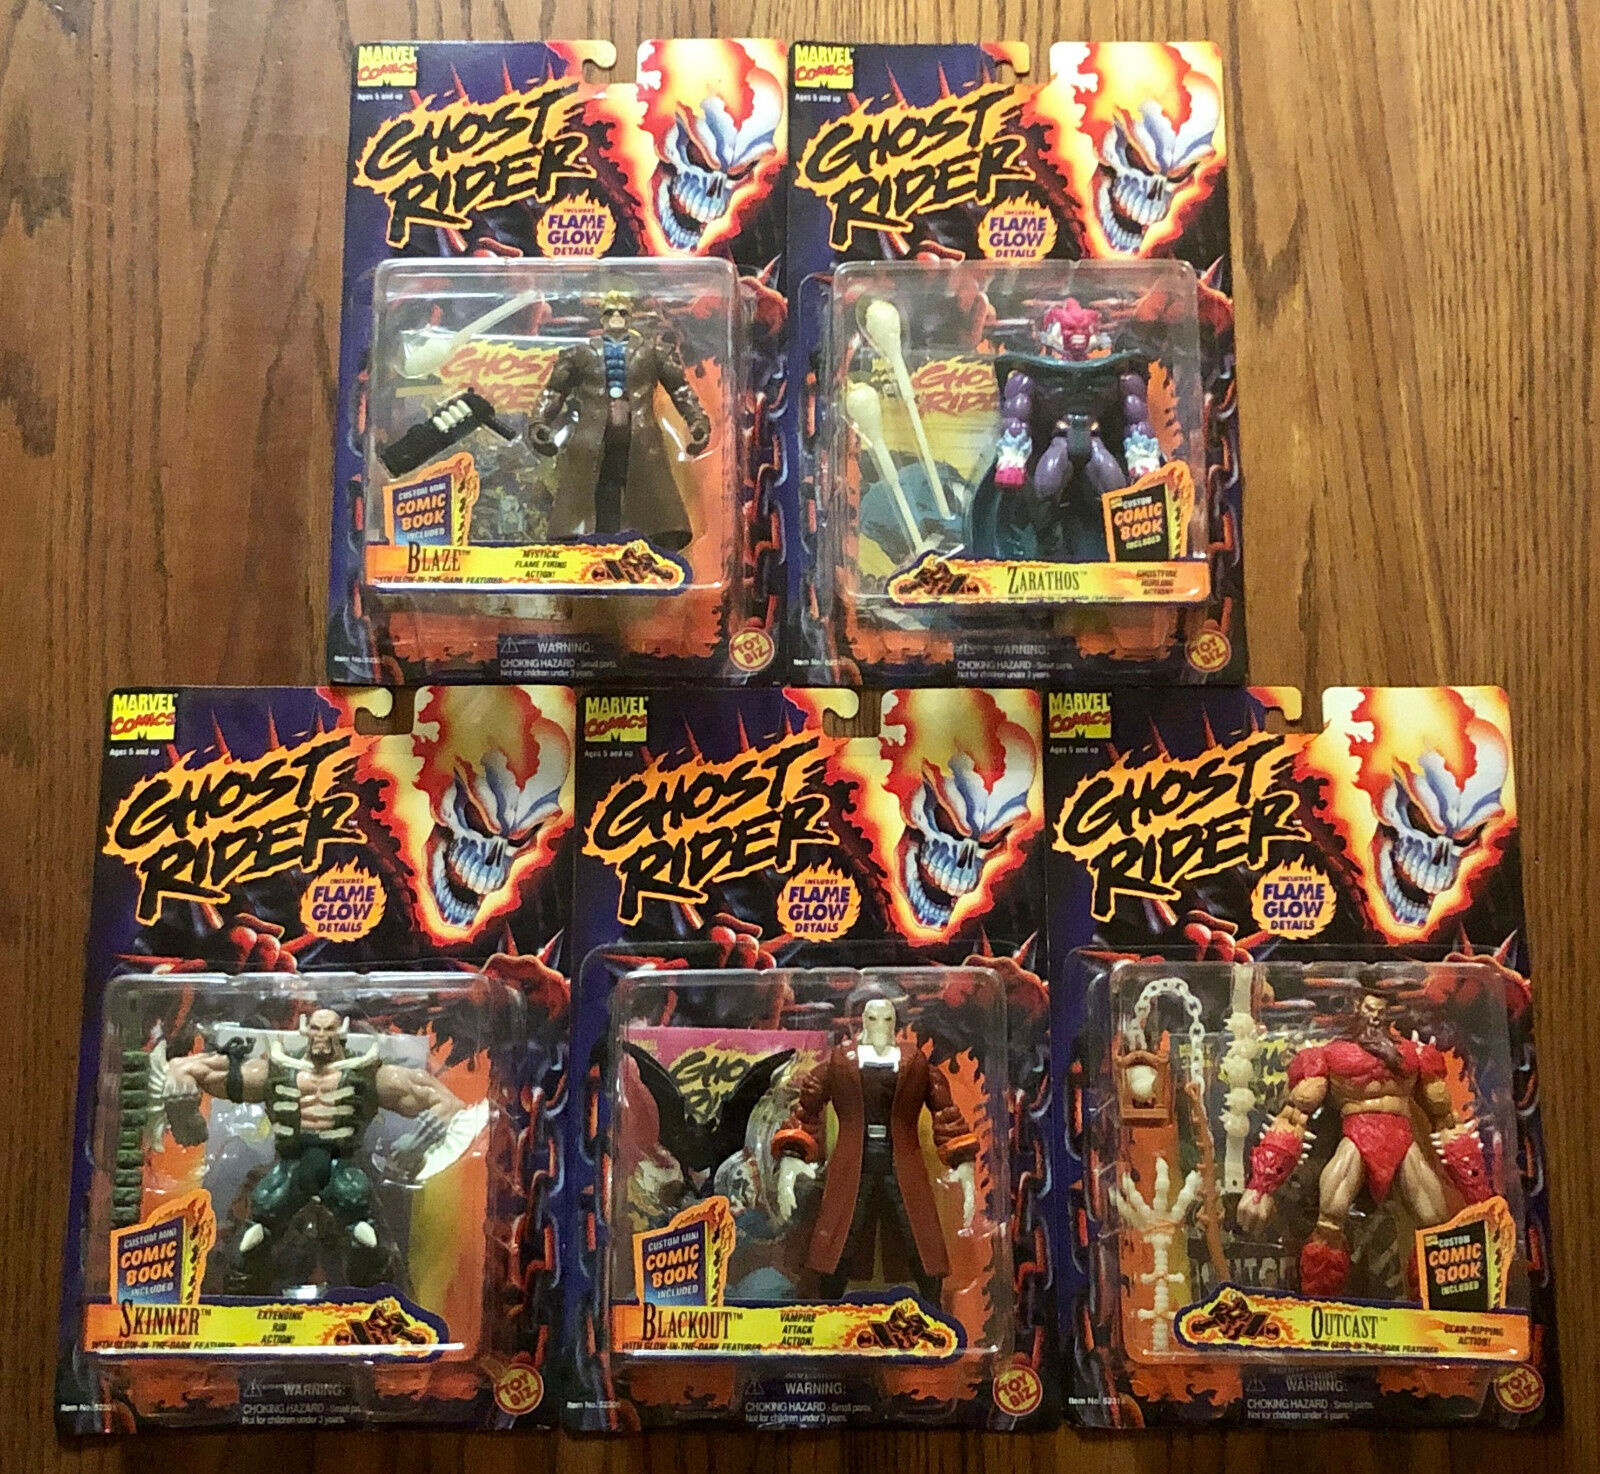 LOT OF 5 1995 GHOST RIDER TOY BIZ FLAME GLOW ACTION FIGURES SEALED NEW Marvel